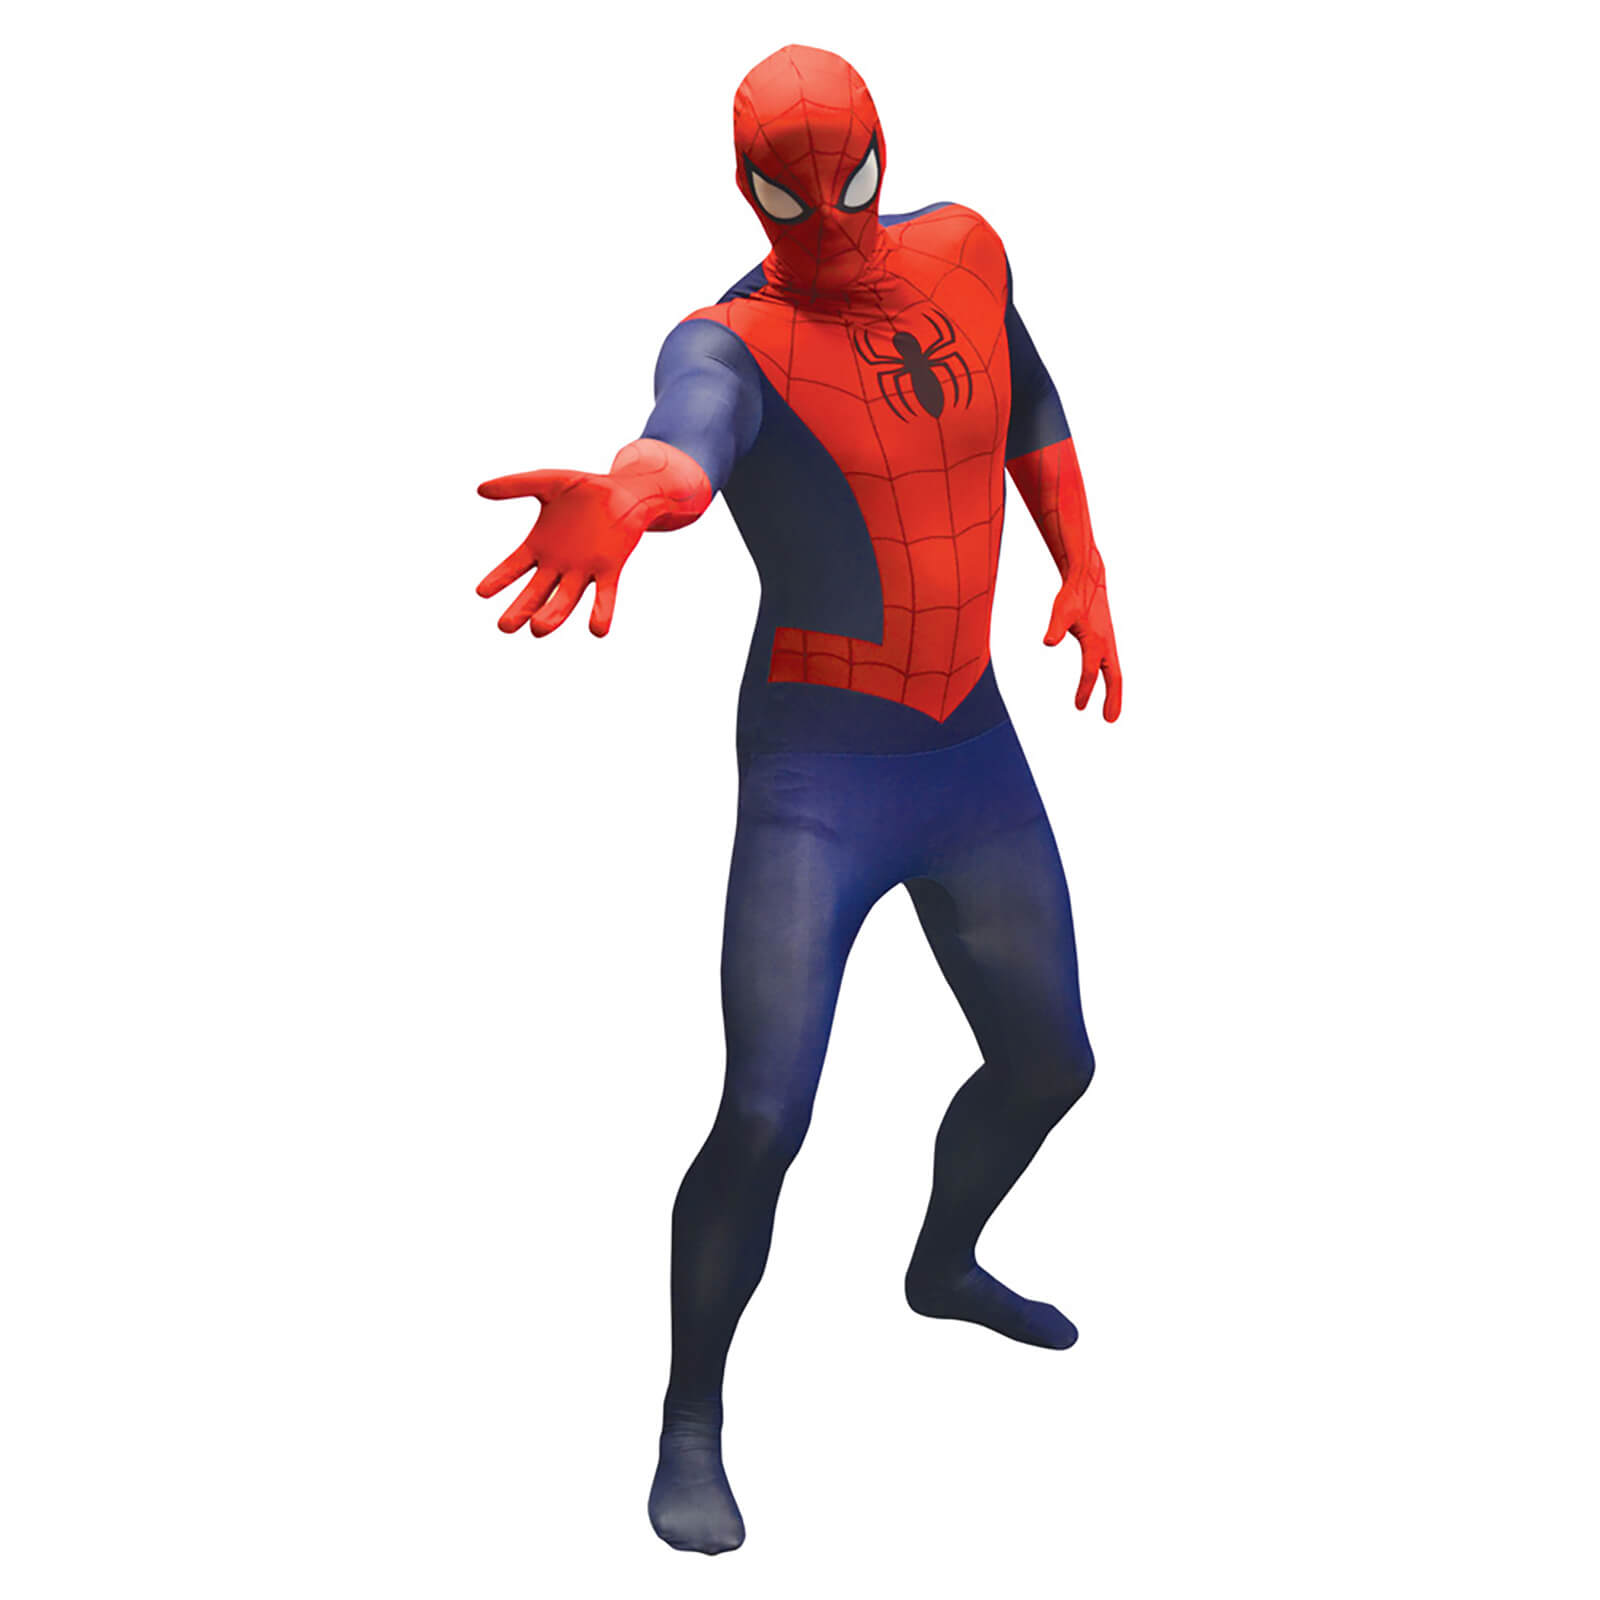 Morphsuit Adults Marvel Spider Man Red Blue Merchandise Zavvi Us Spray Spiderman Sport Description